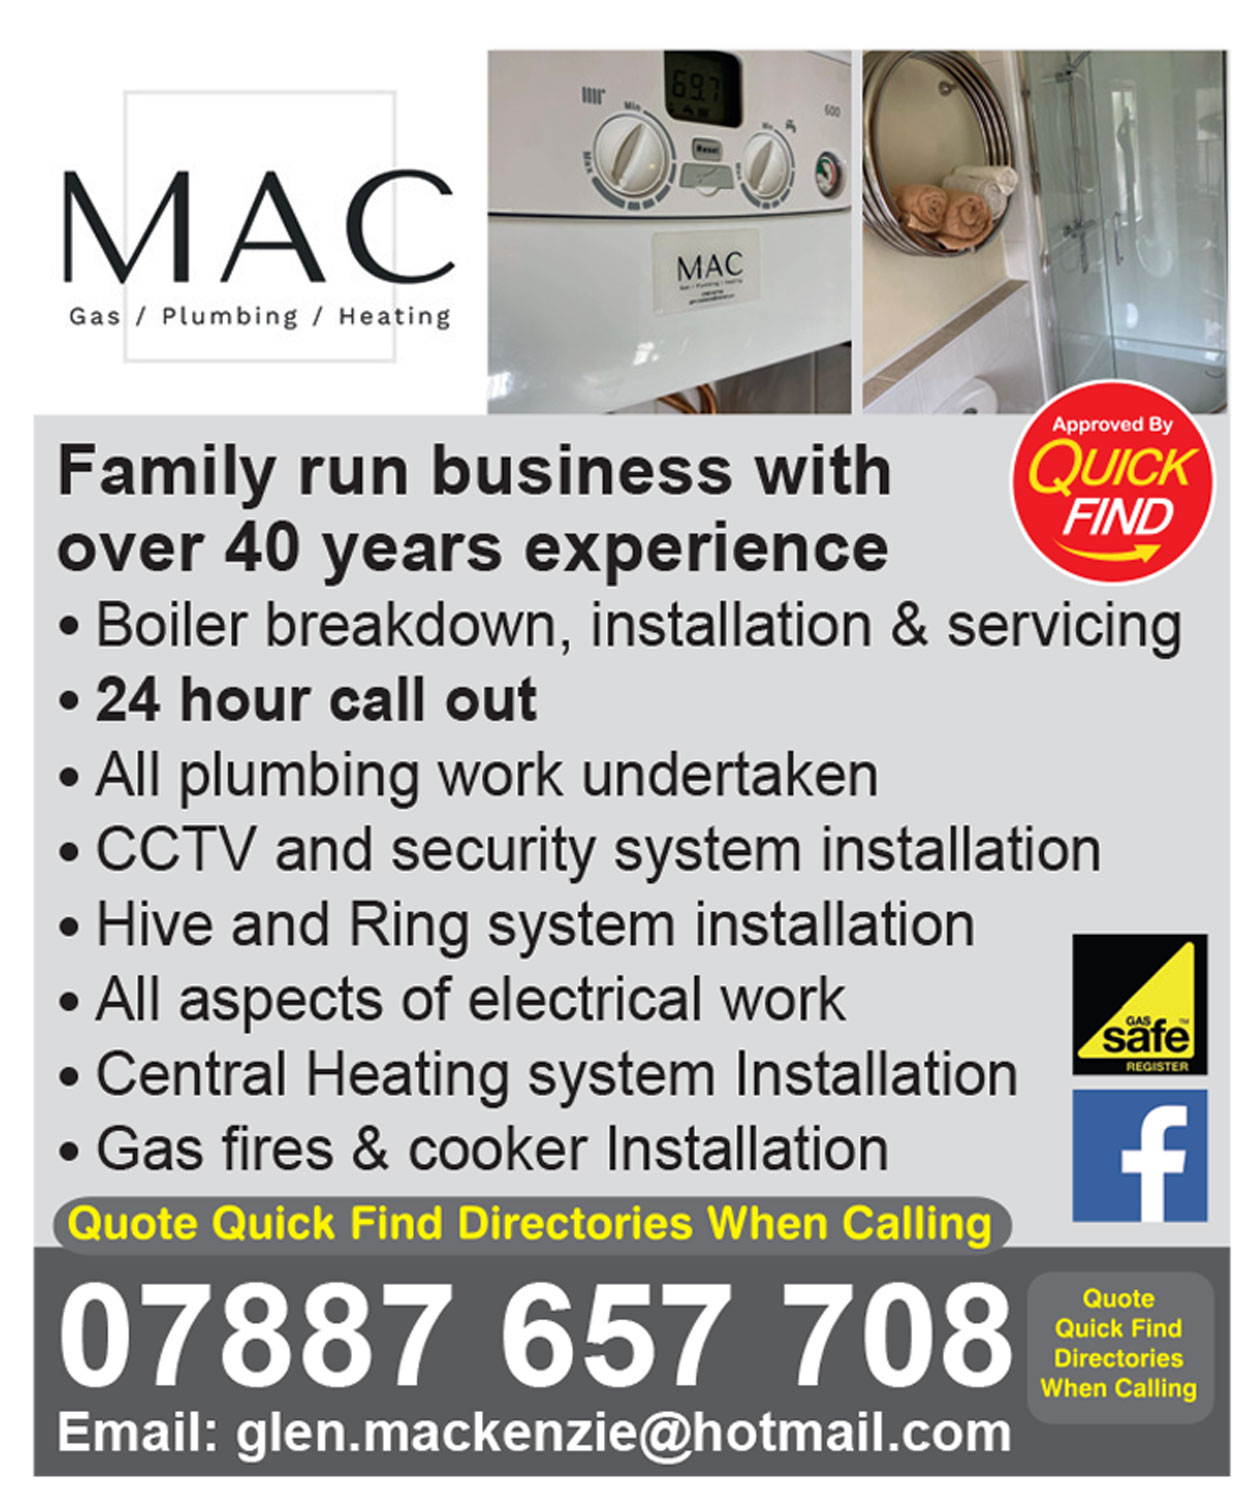 MAC Gas, Plumbing, Heating